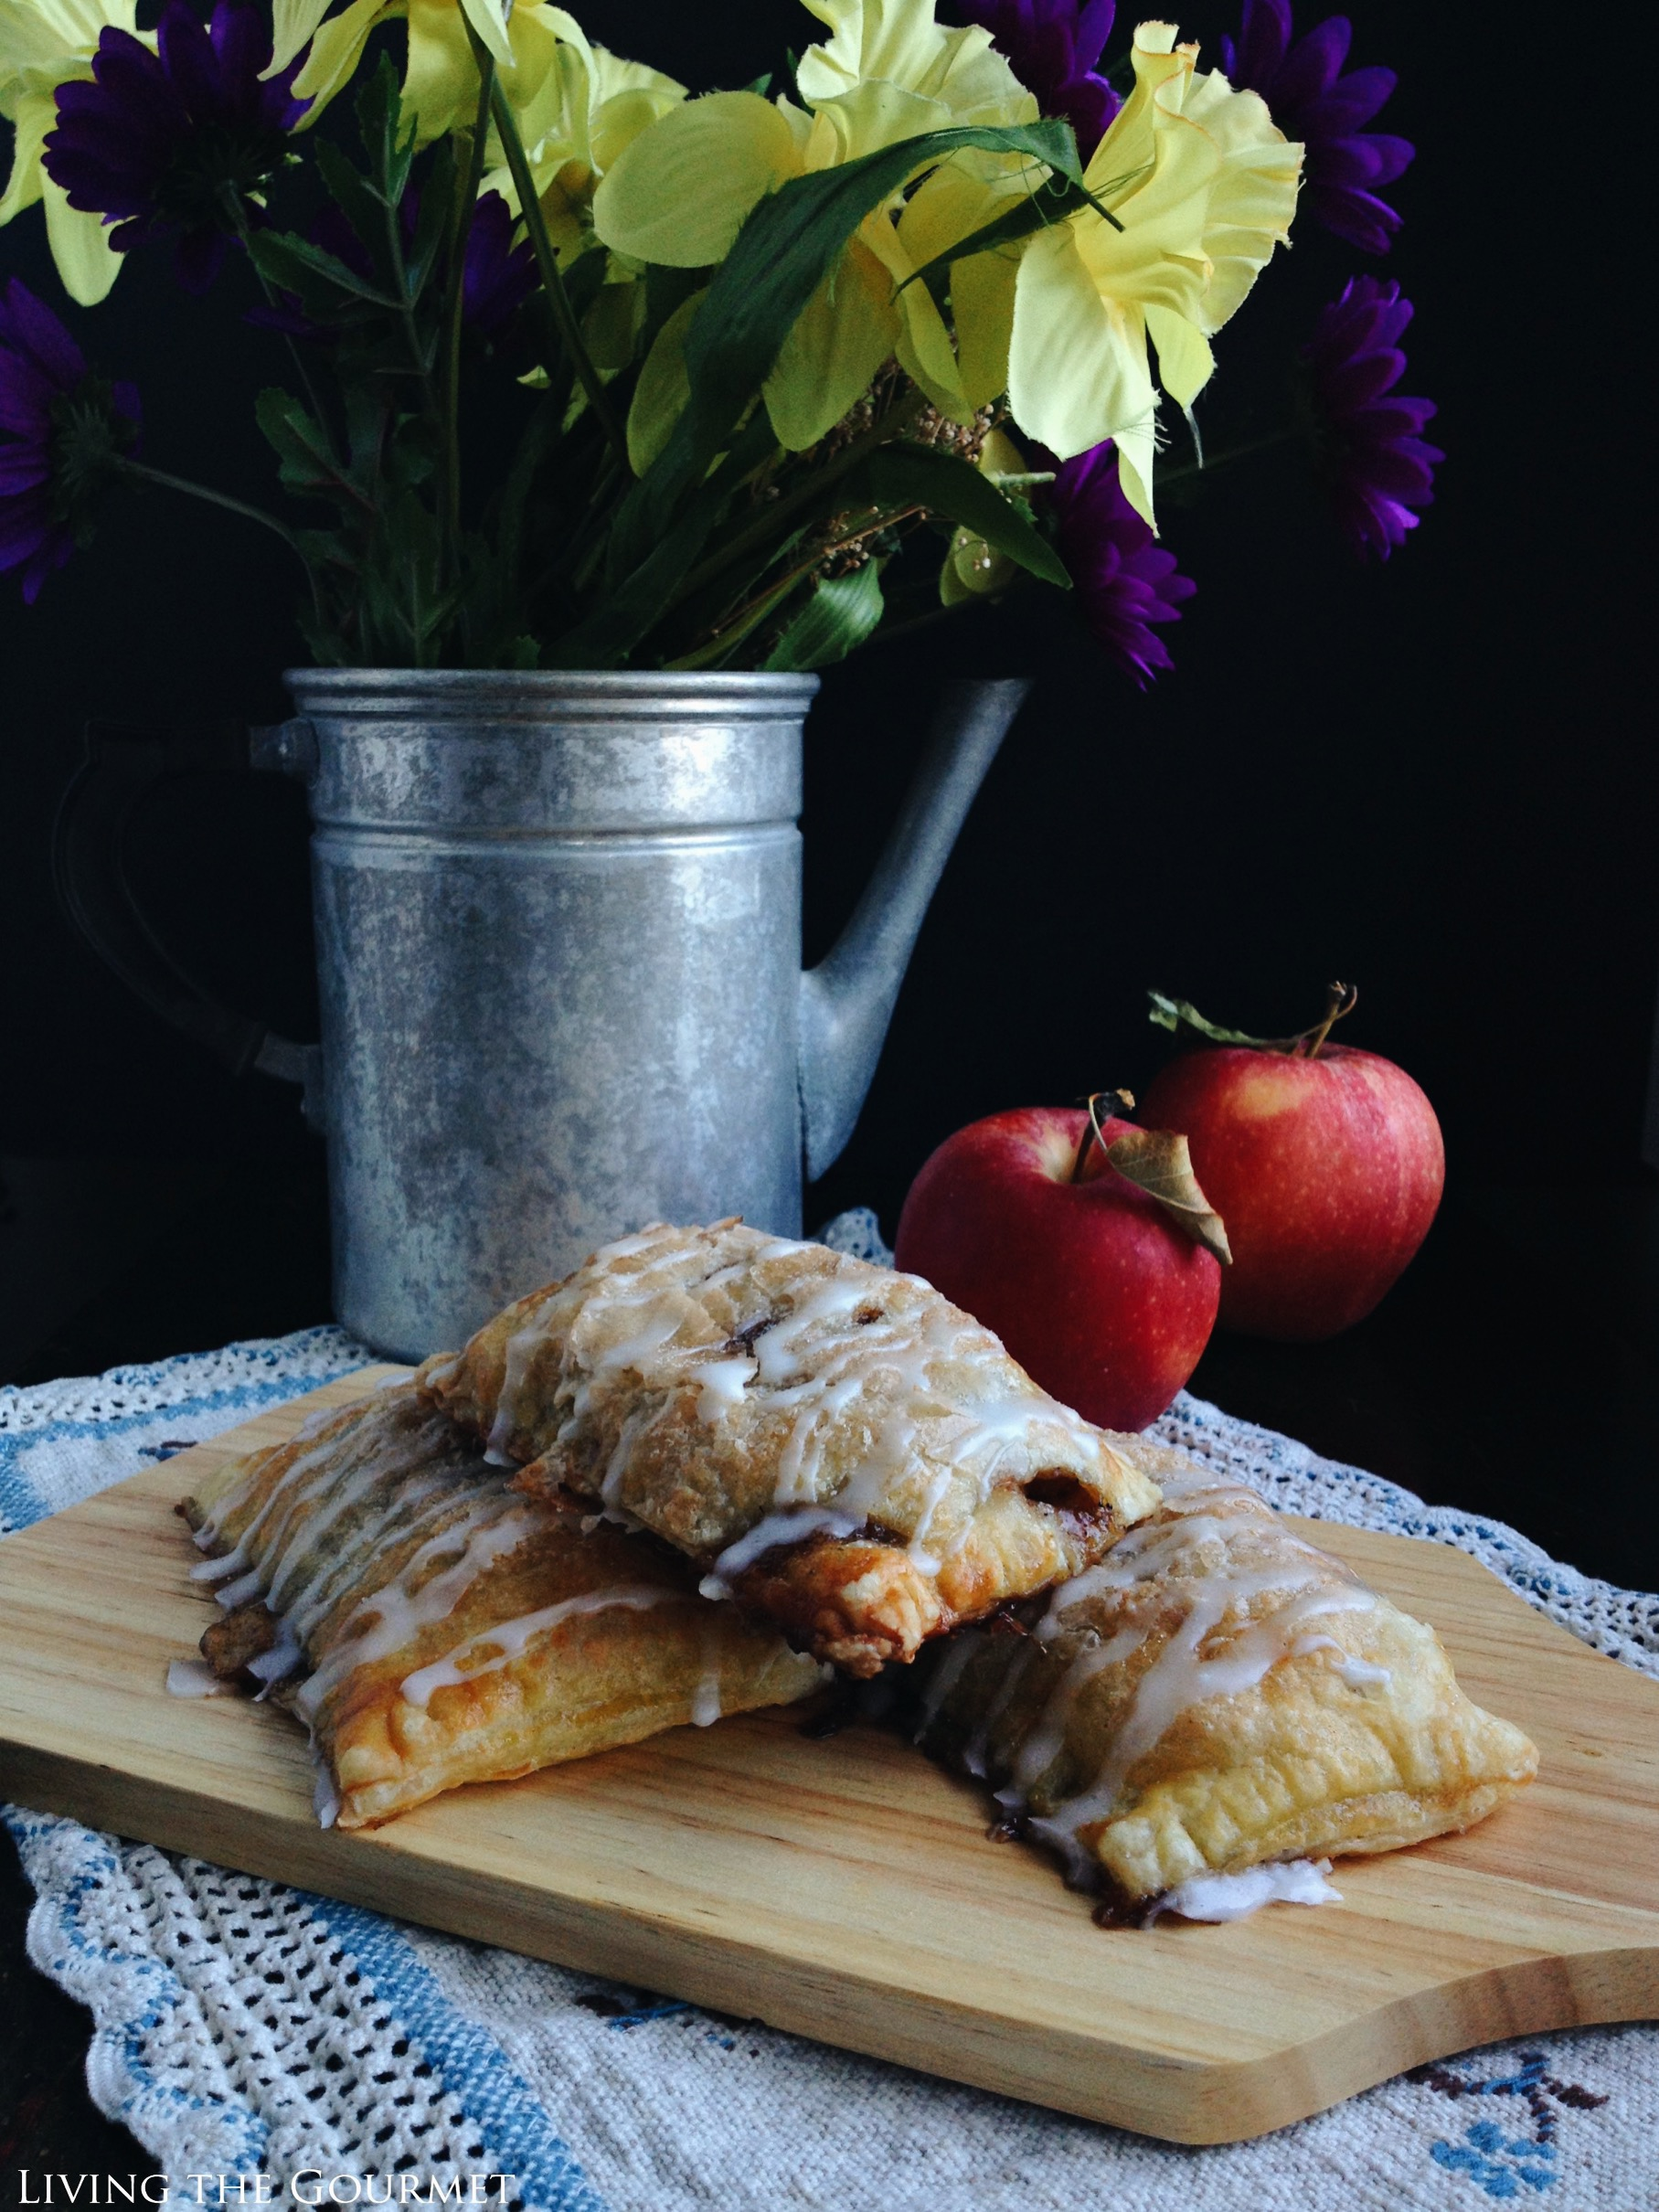 Living the Gourmet: Brown Butter Brandy Apple Hand Pies